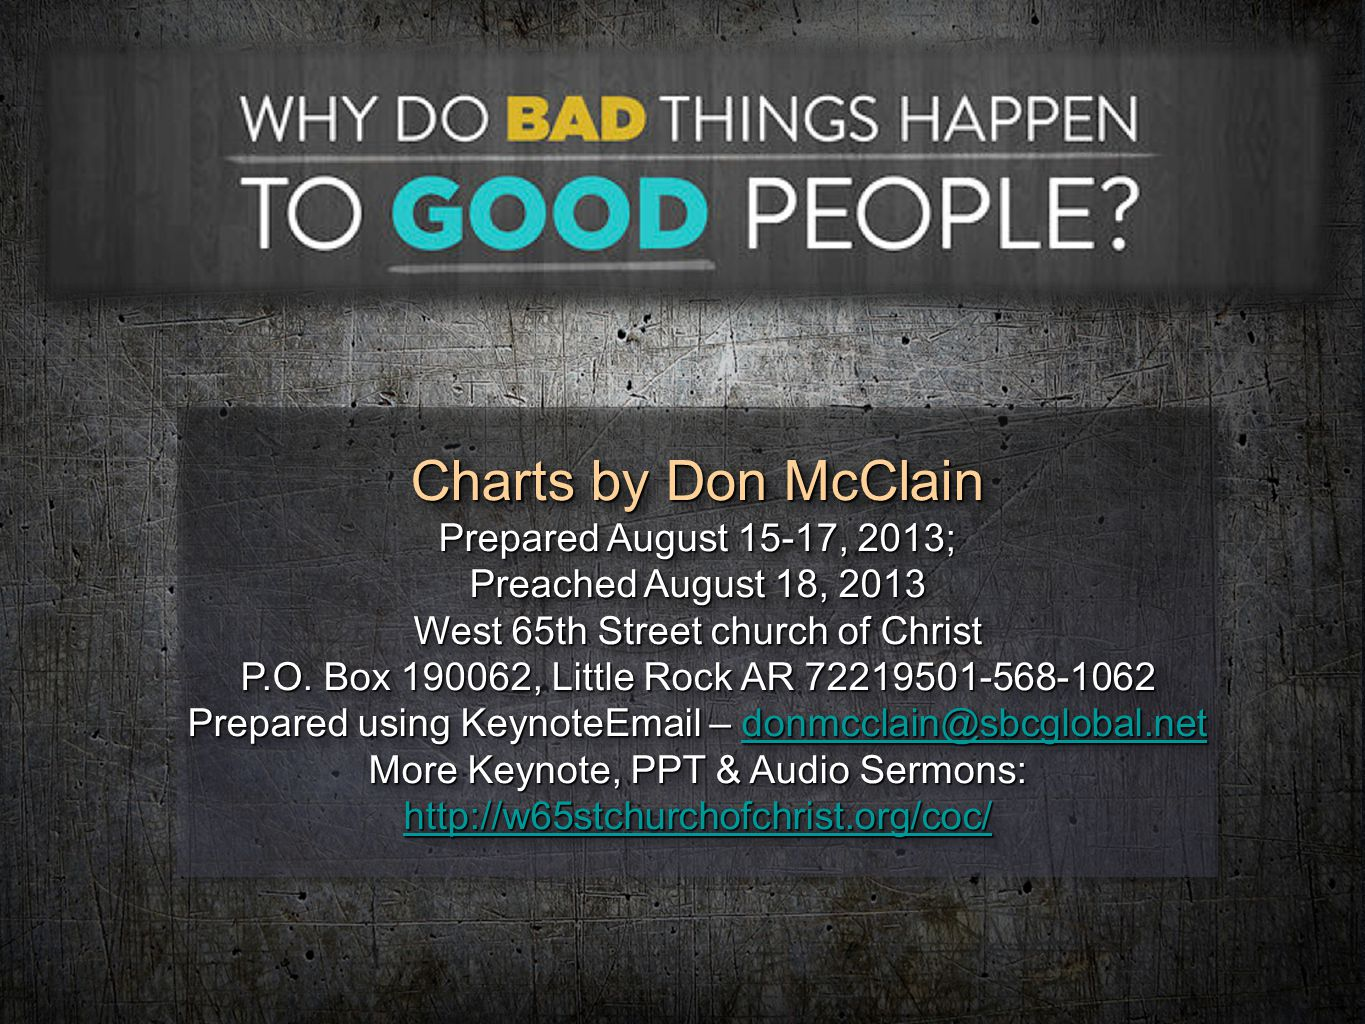 Charts by Don McClain Prepared August 15-17, 2013; Preached August 18, 2013 West 65th Street church of Christ P.O. Box 190062, Little Rock AR 72219501